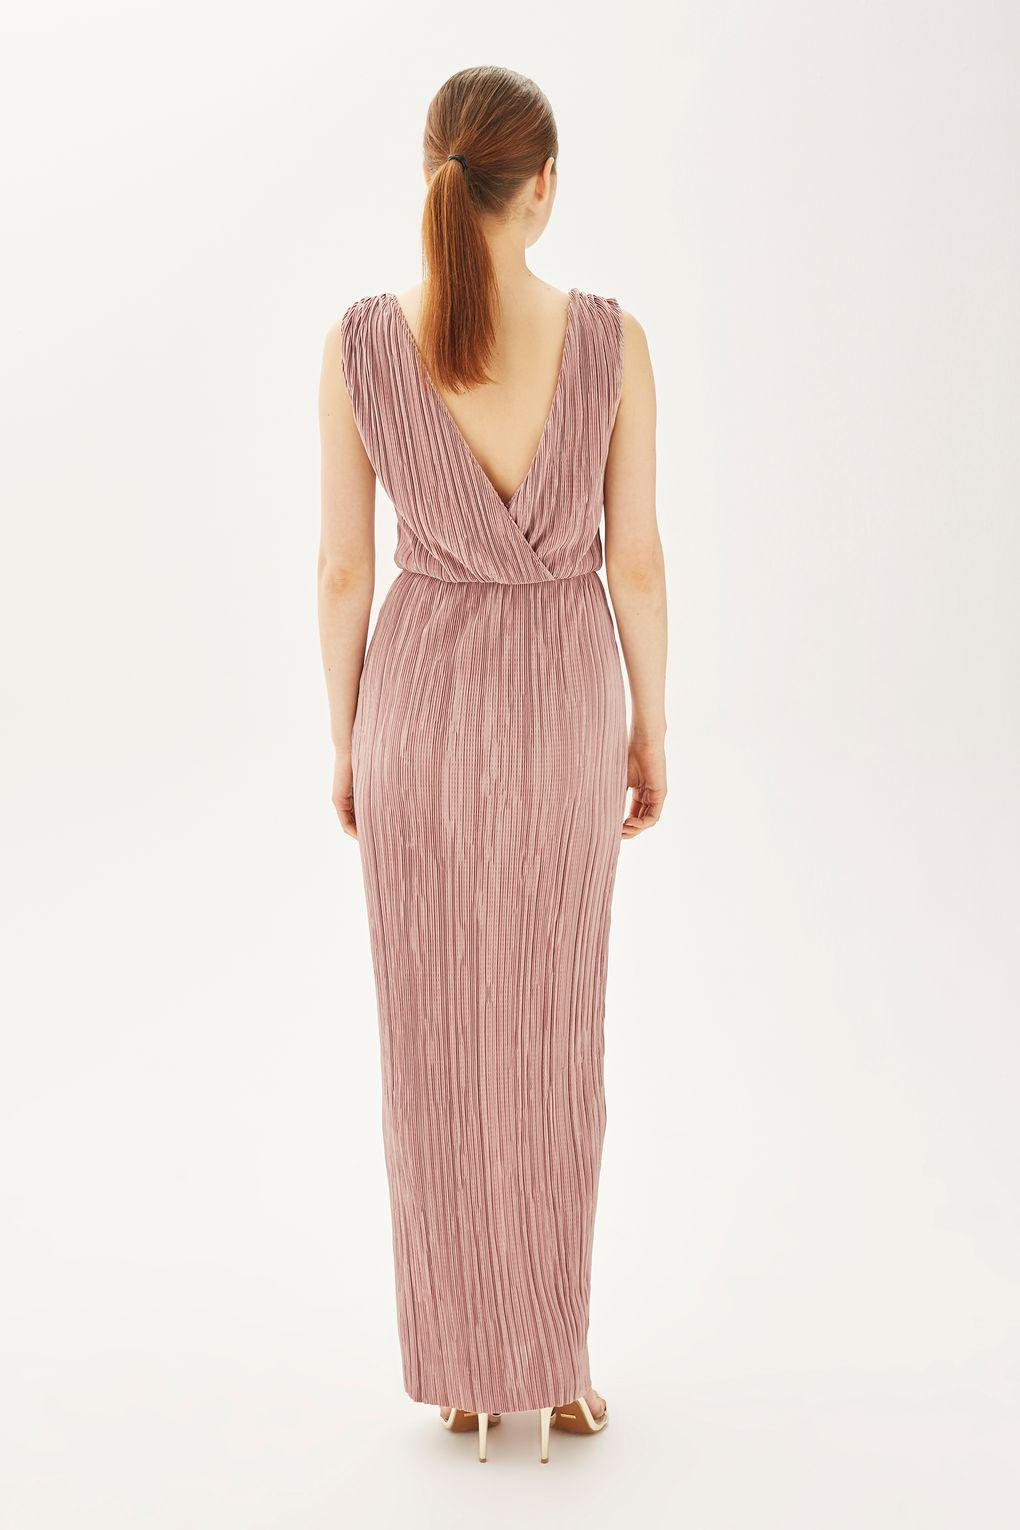 Oh My Love Synthetic Pleated Grecian Maxi Dress By in Mauve (Purple)